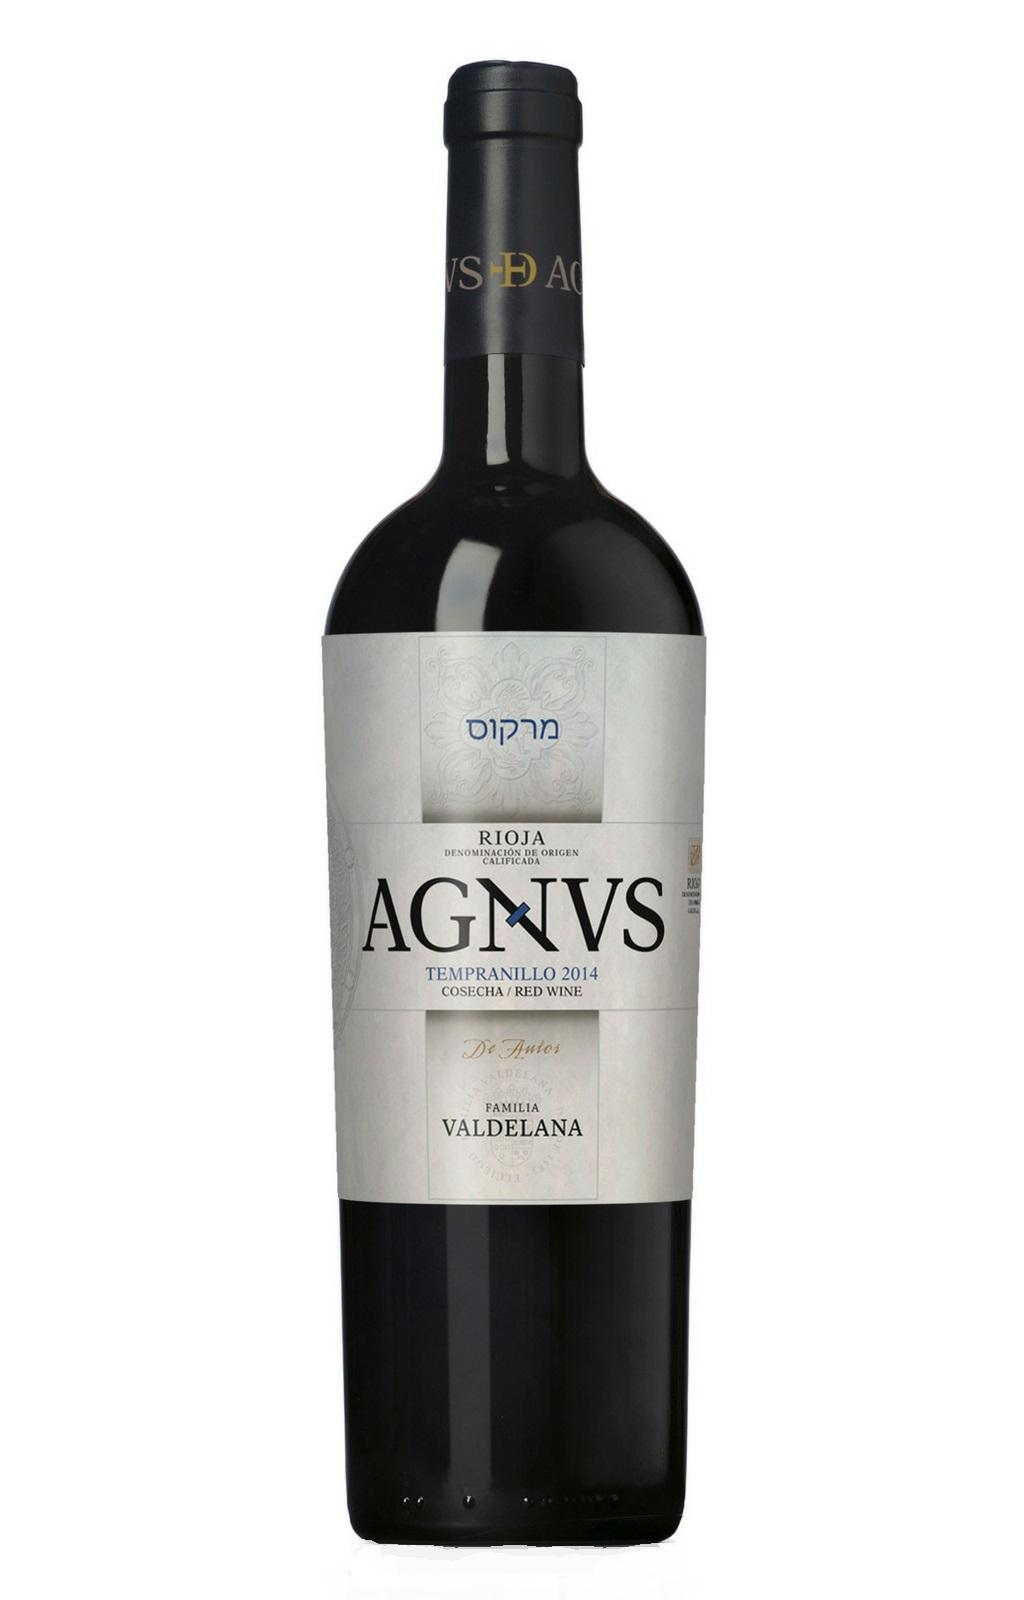 Agnvs Roble.jpg